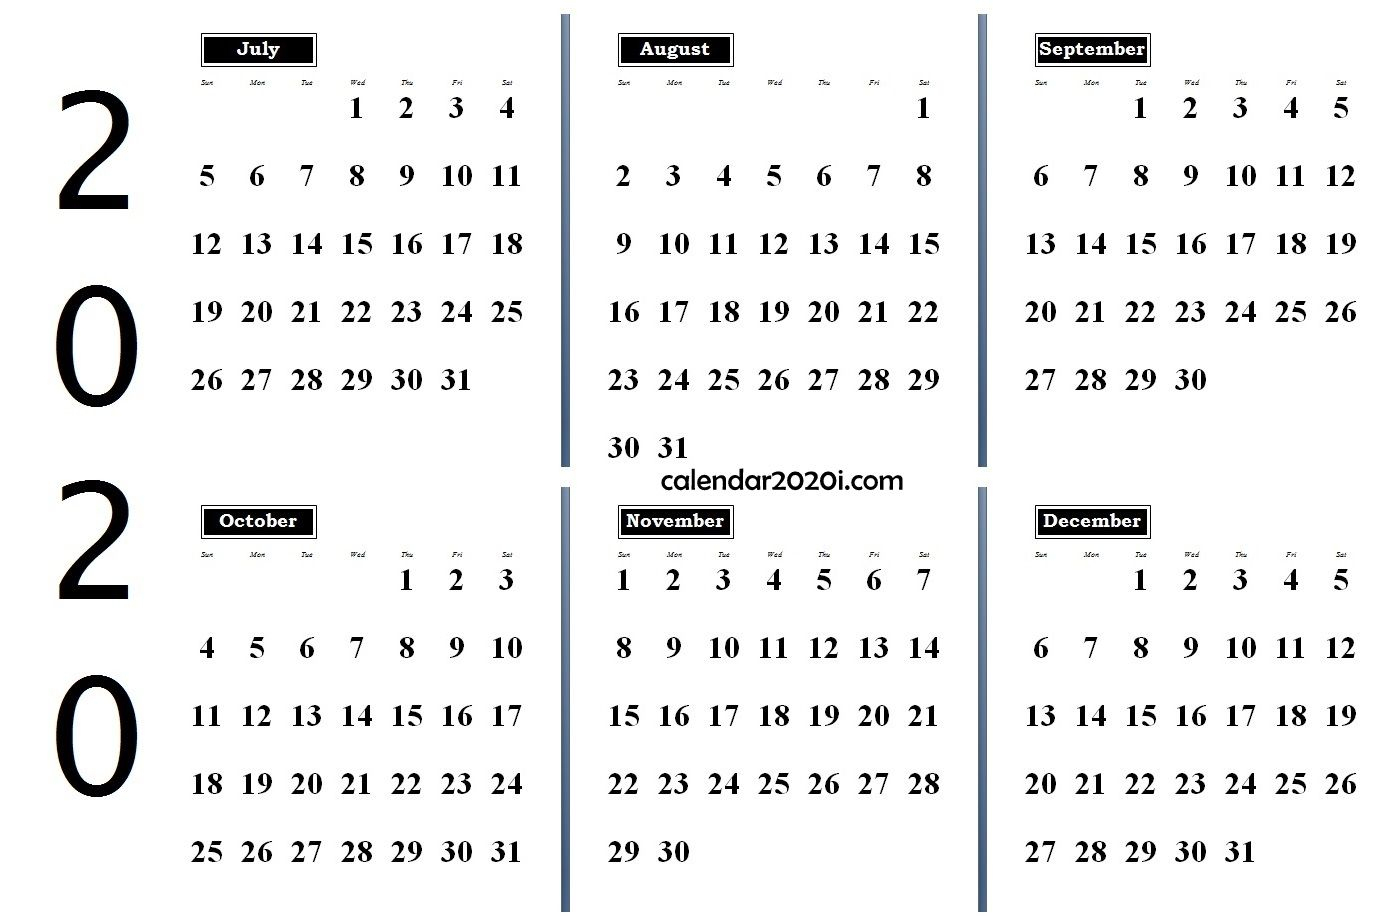 2020 6 Months Calendar From July To December | Monthly within October To December 2020 Calendar